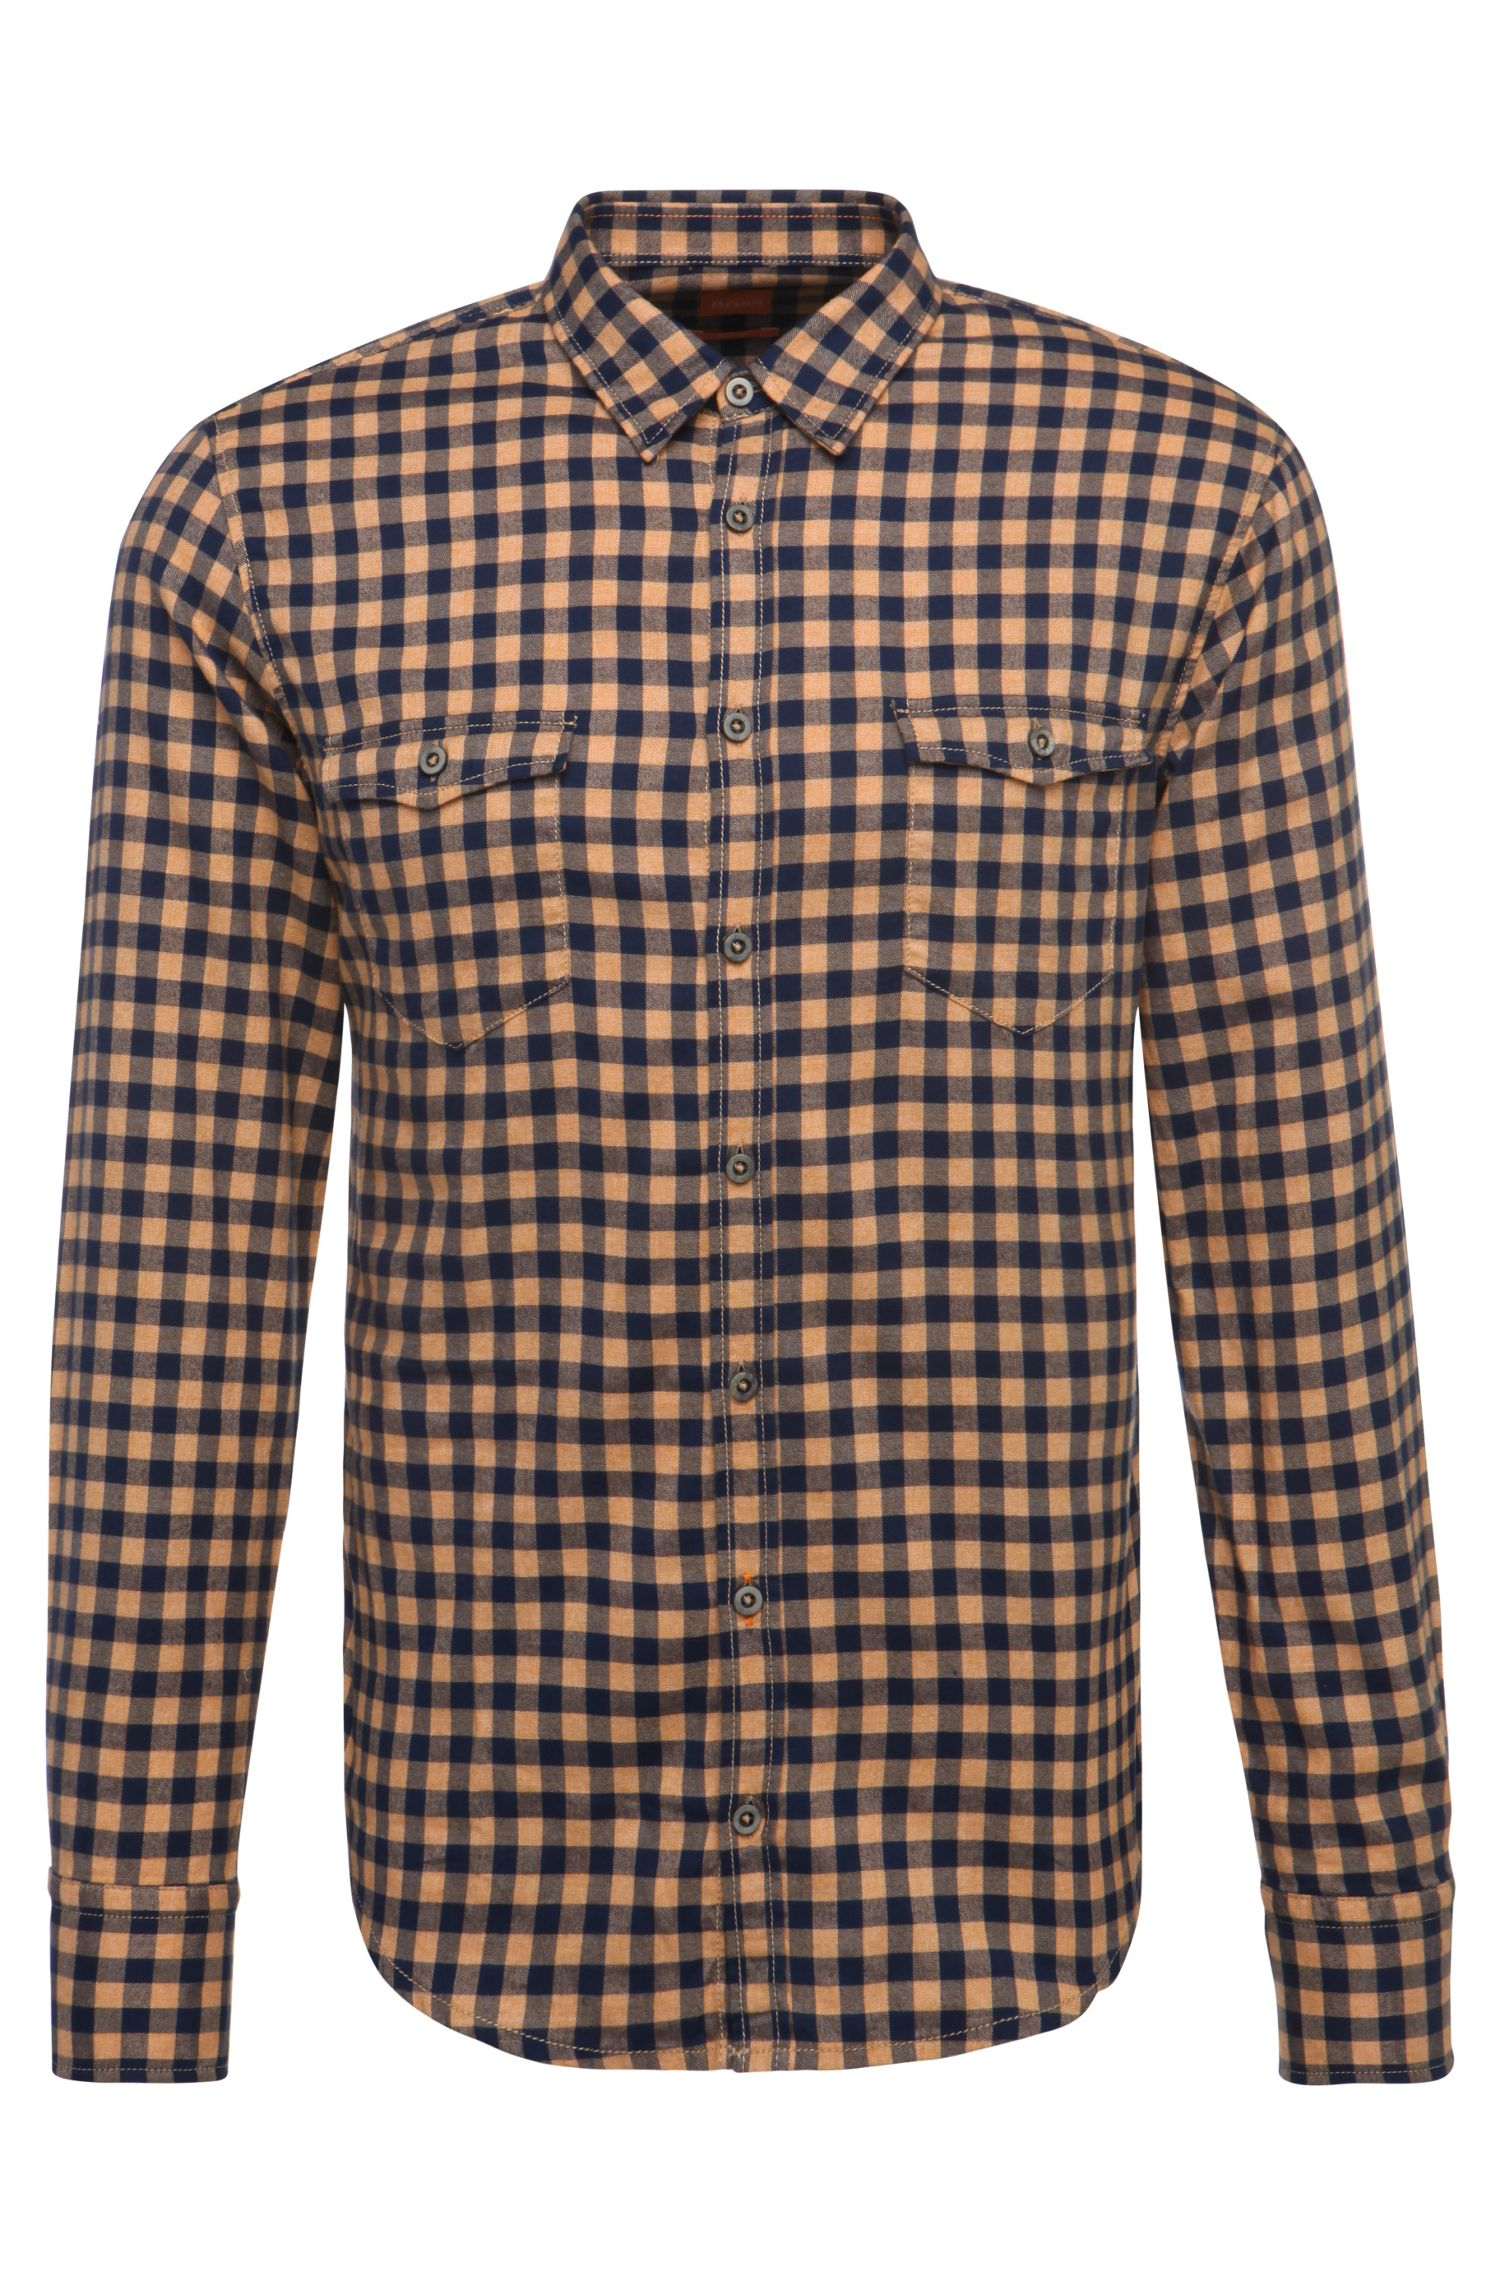 'EdoslimE' | Slim Fit, Cotton Flannel Button Down Shirt